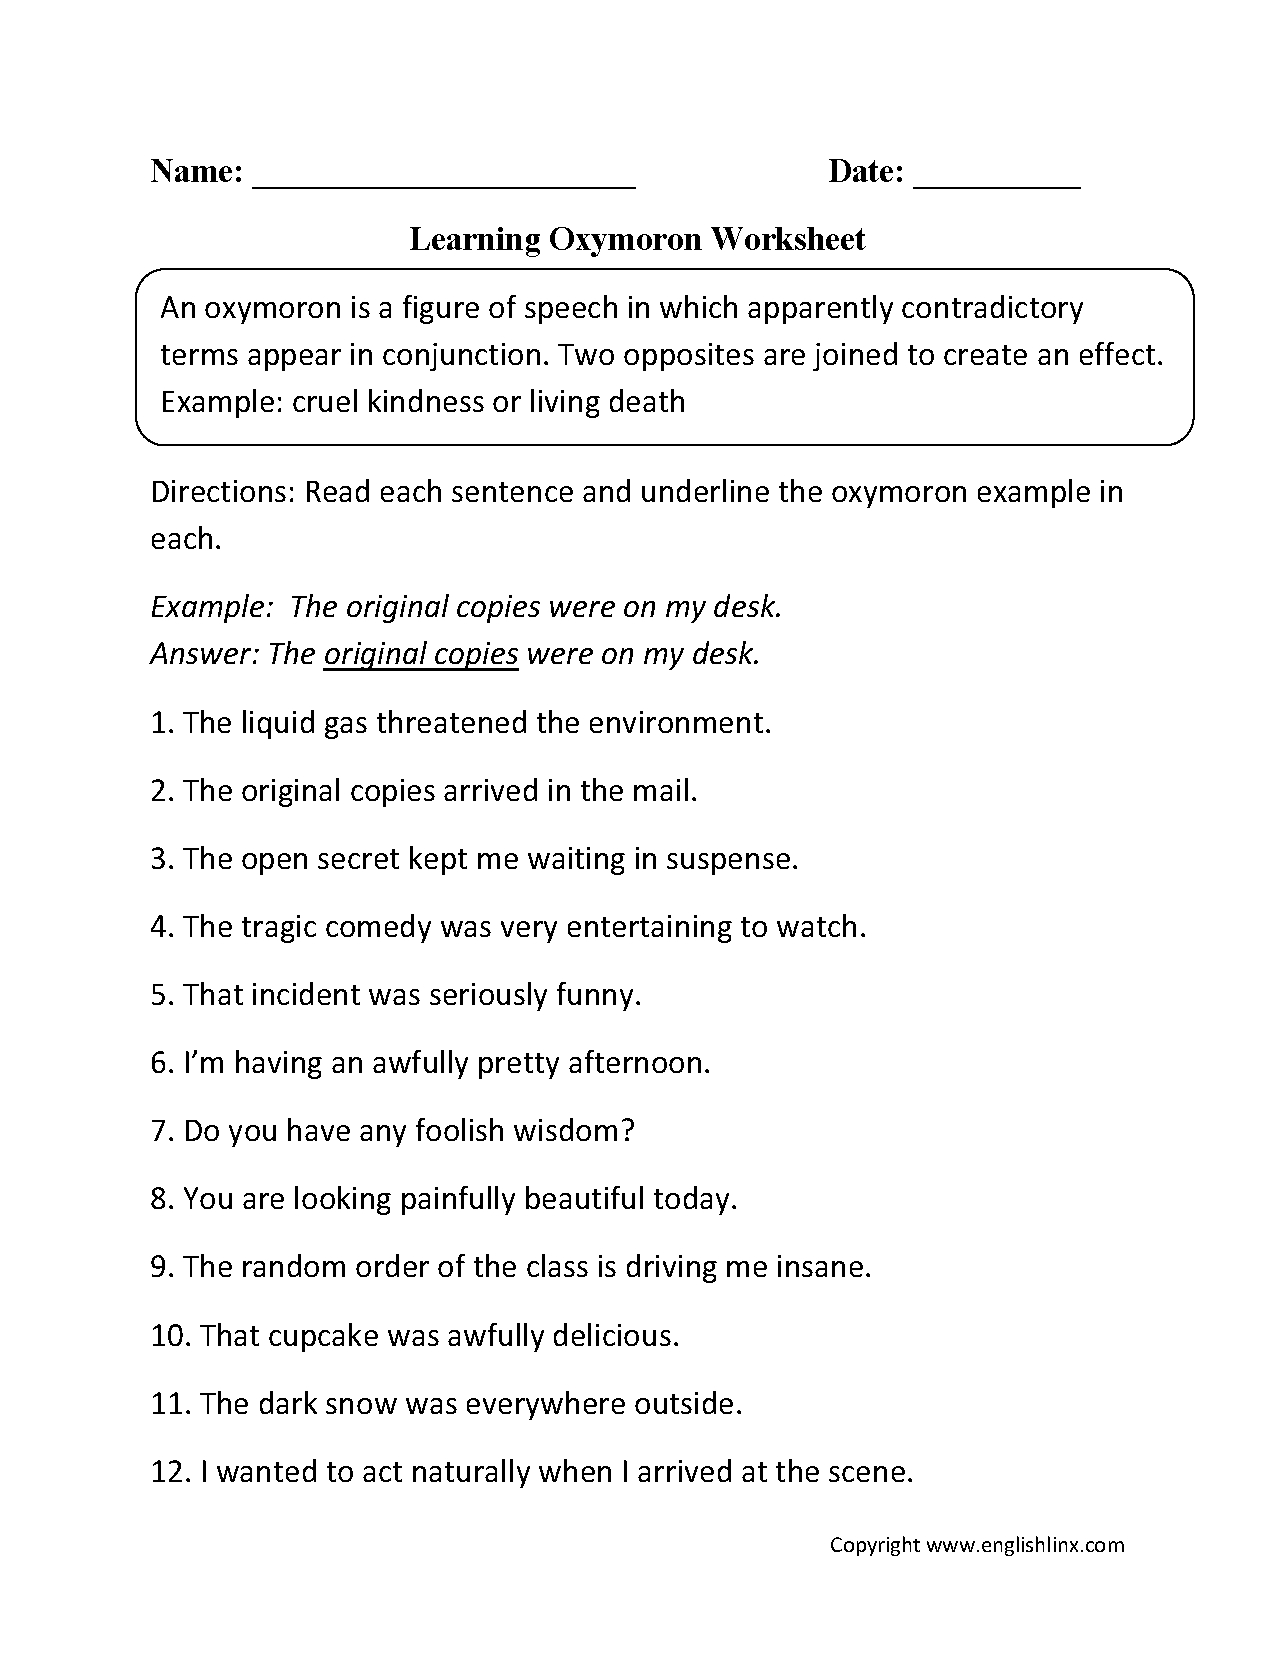 worksheet Oxymoron Worksheet figurative language worksheets oxymoron learning worksheet onomatopoeia sounds worksheet